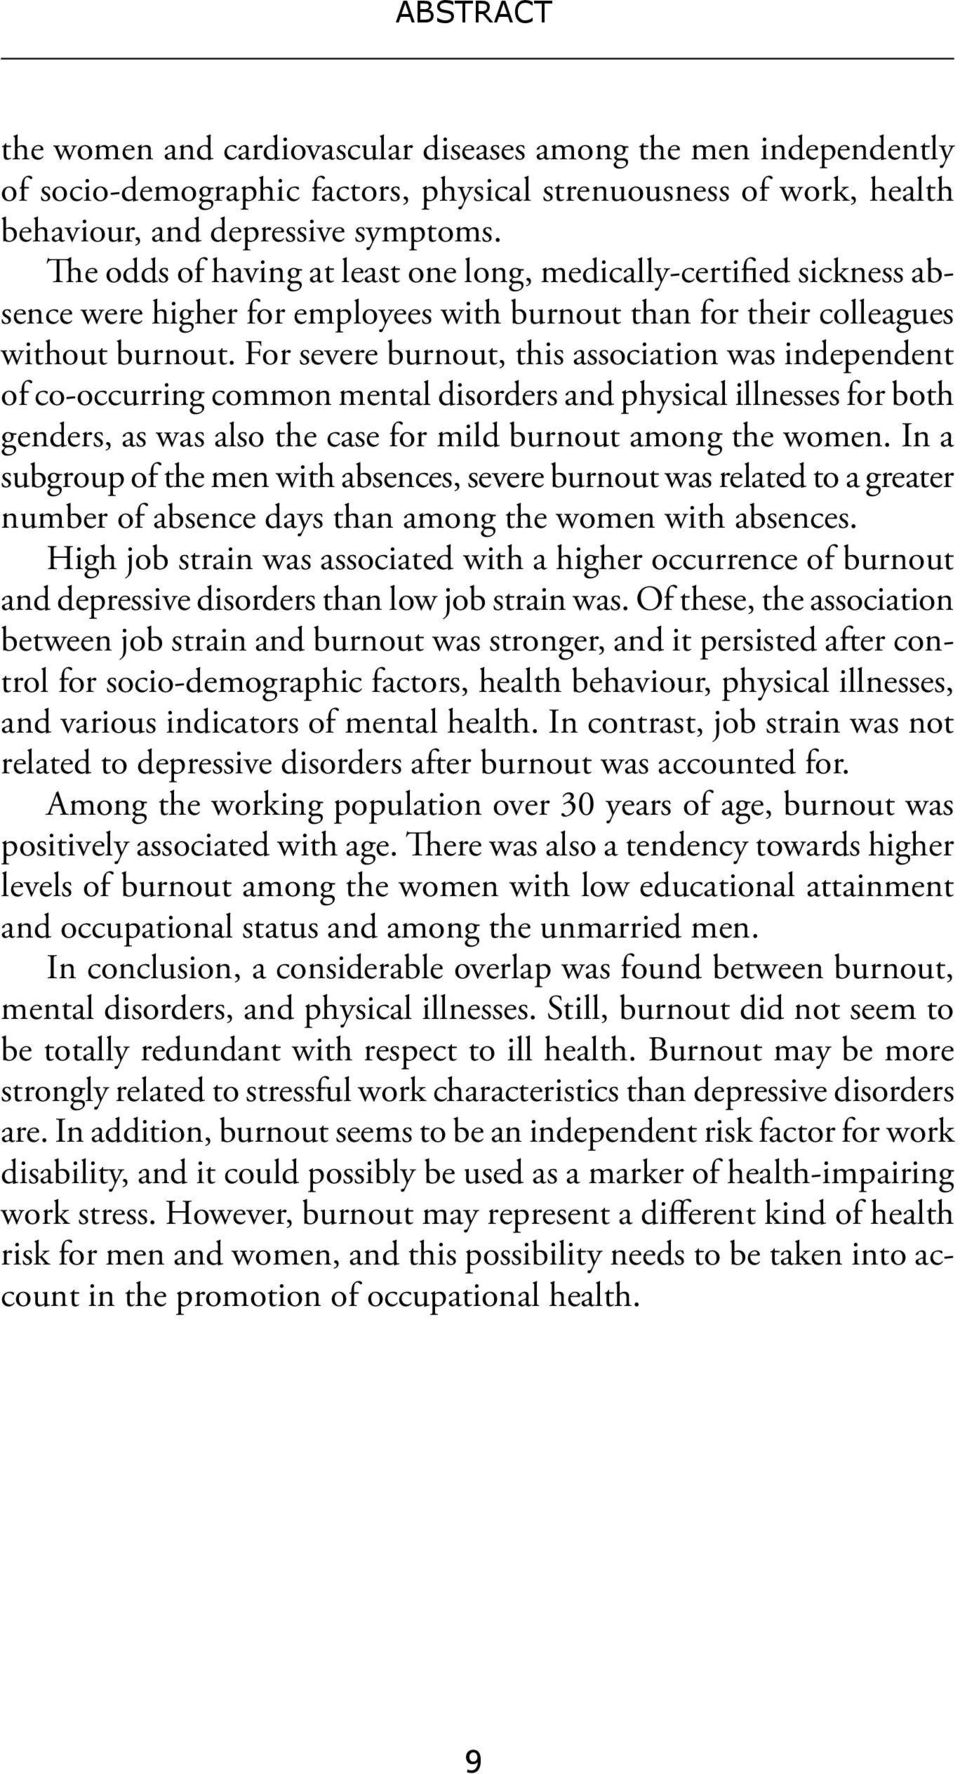 For severe burnout, this association was independent of co-occurring common mental disorders and physical illnesses for both genders, as was also the case for mild burnout among the women.